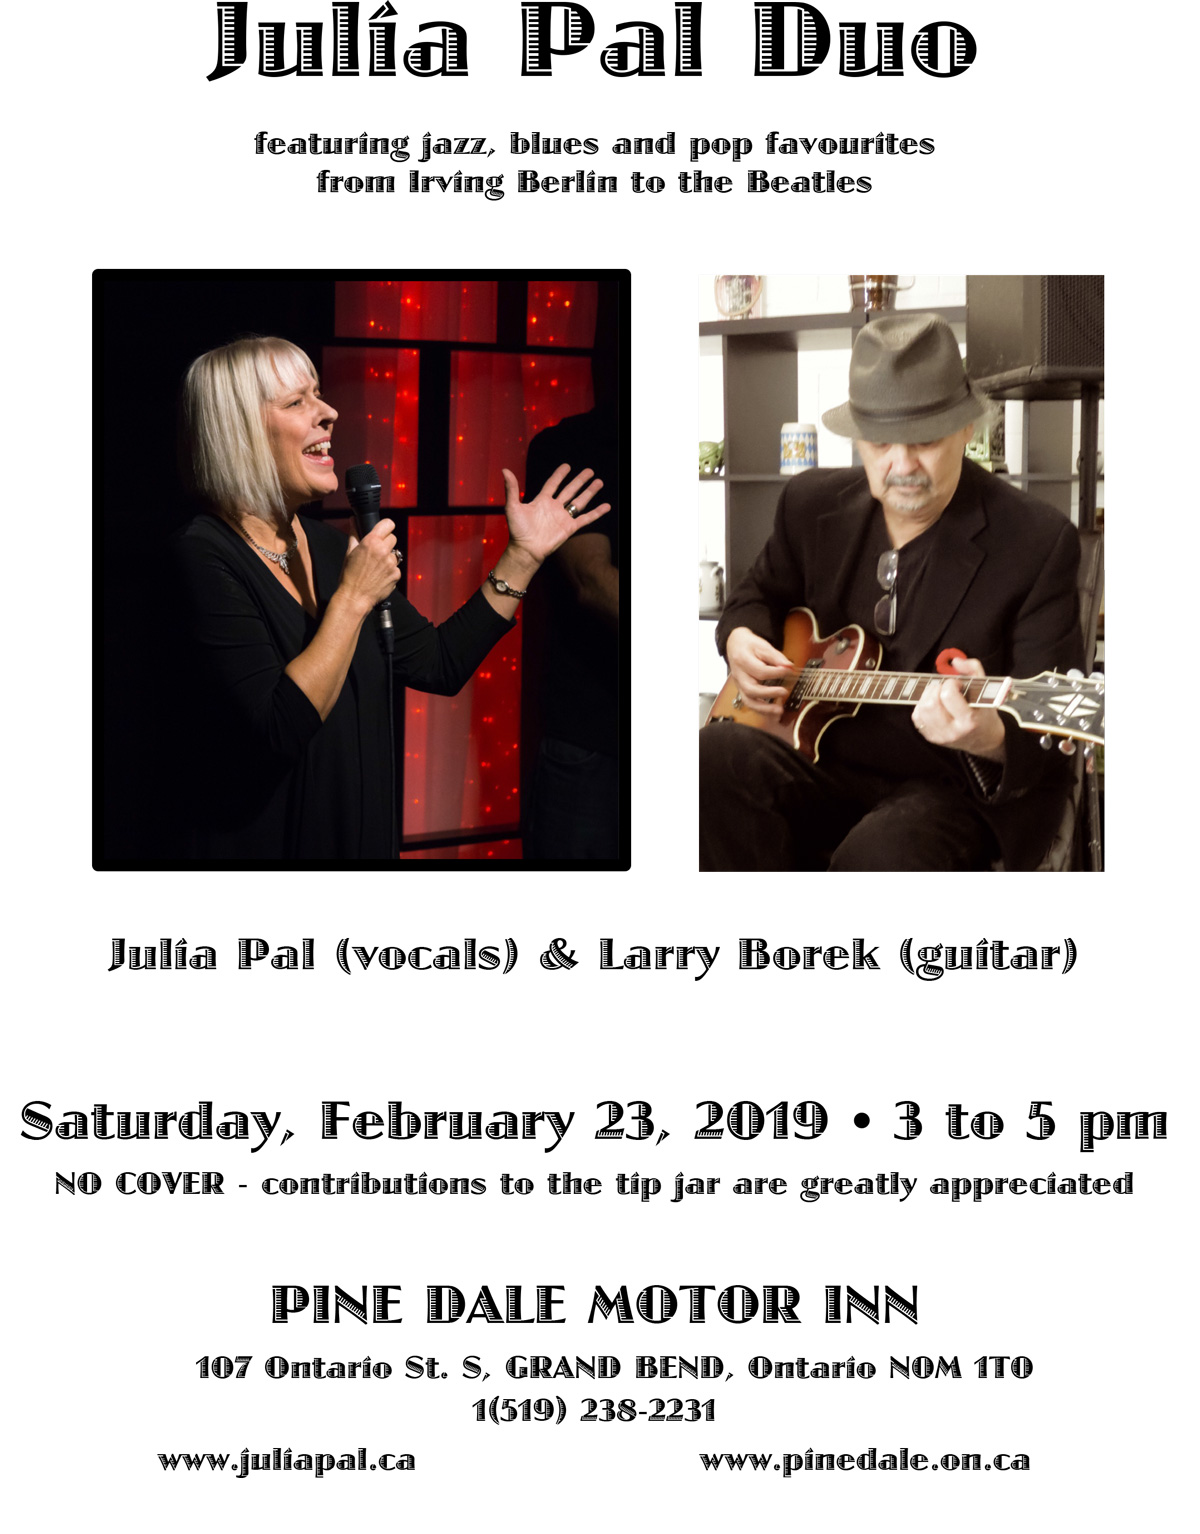 Julia Pal Duo - Feb. 23, 2019 Pinedale Motor Inn